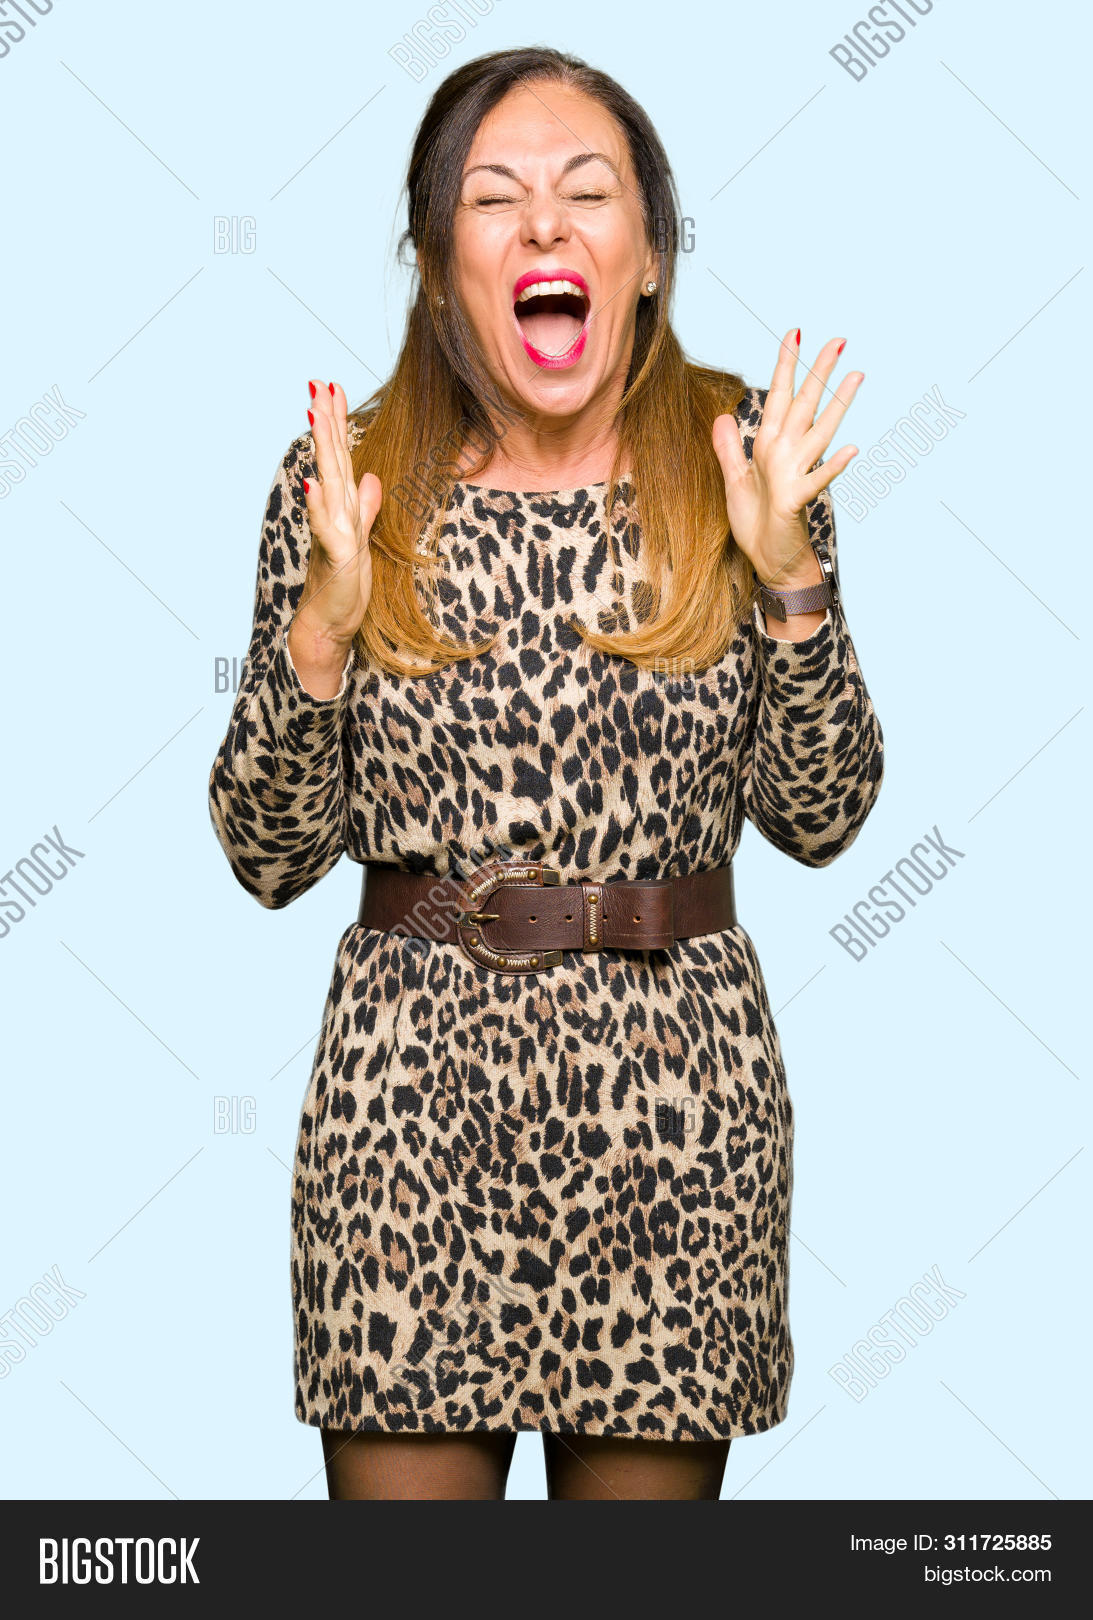 Beautiful middle age woman wearing leopard animal print dress celebrating mad and crazy for success with arms raised and closed eyes screaming excited. Winner concept